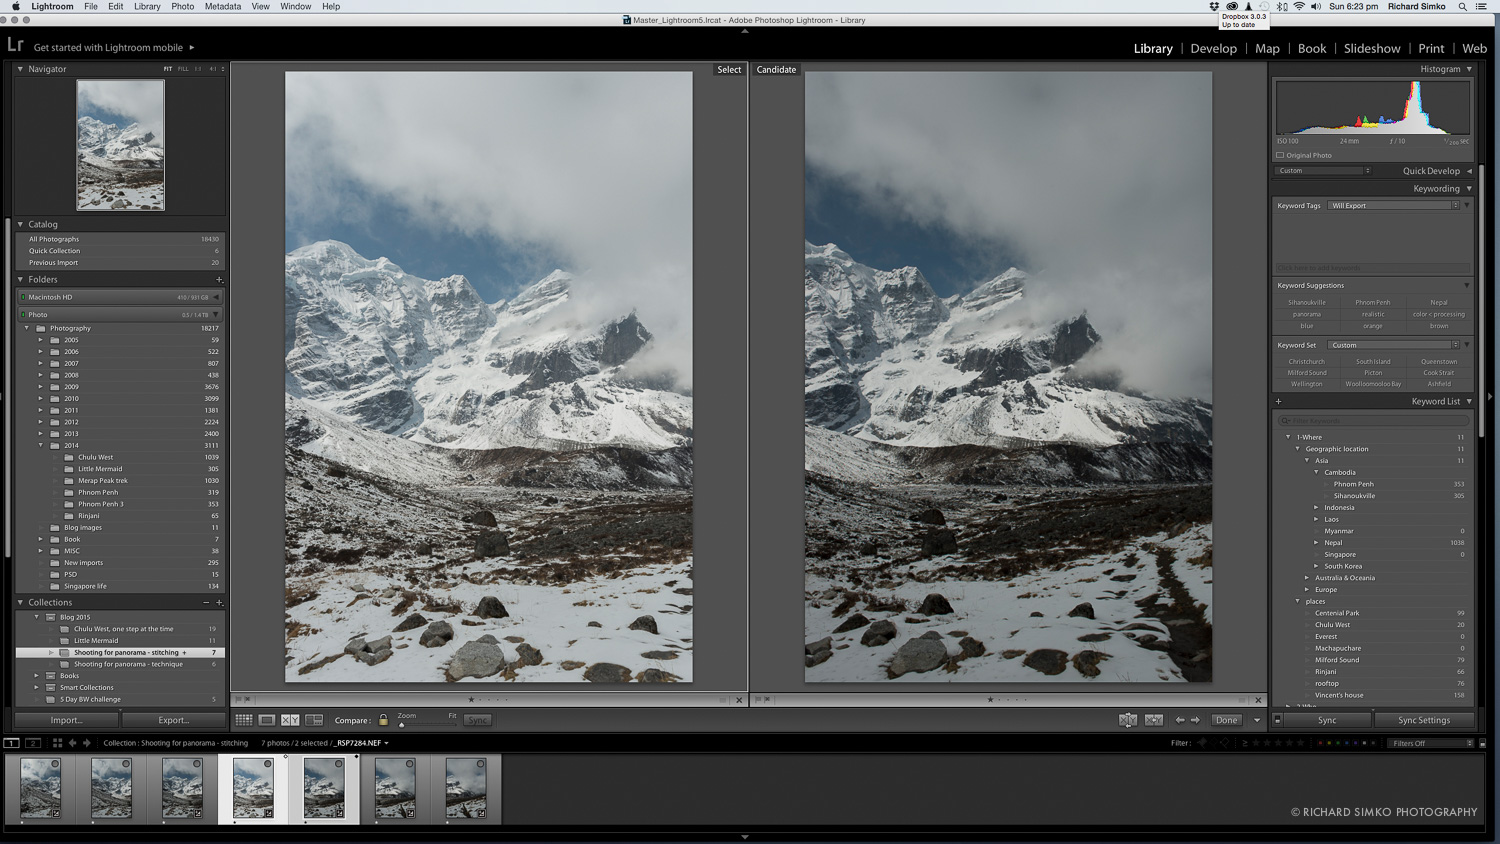 4. Difference between adjusted image (left) and original capture (right)